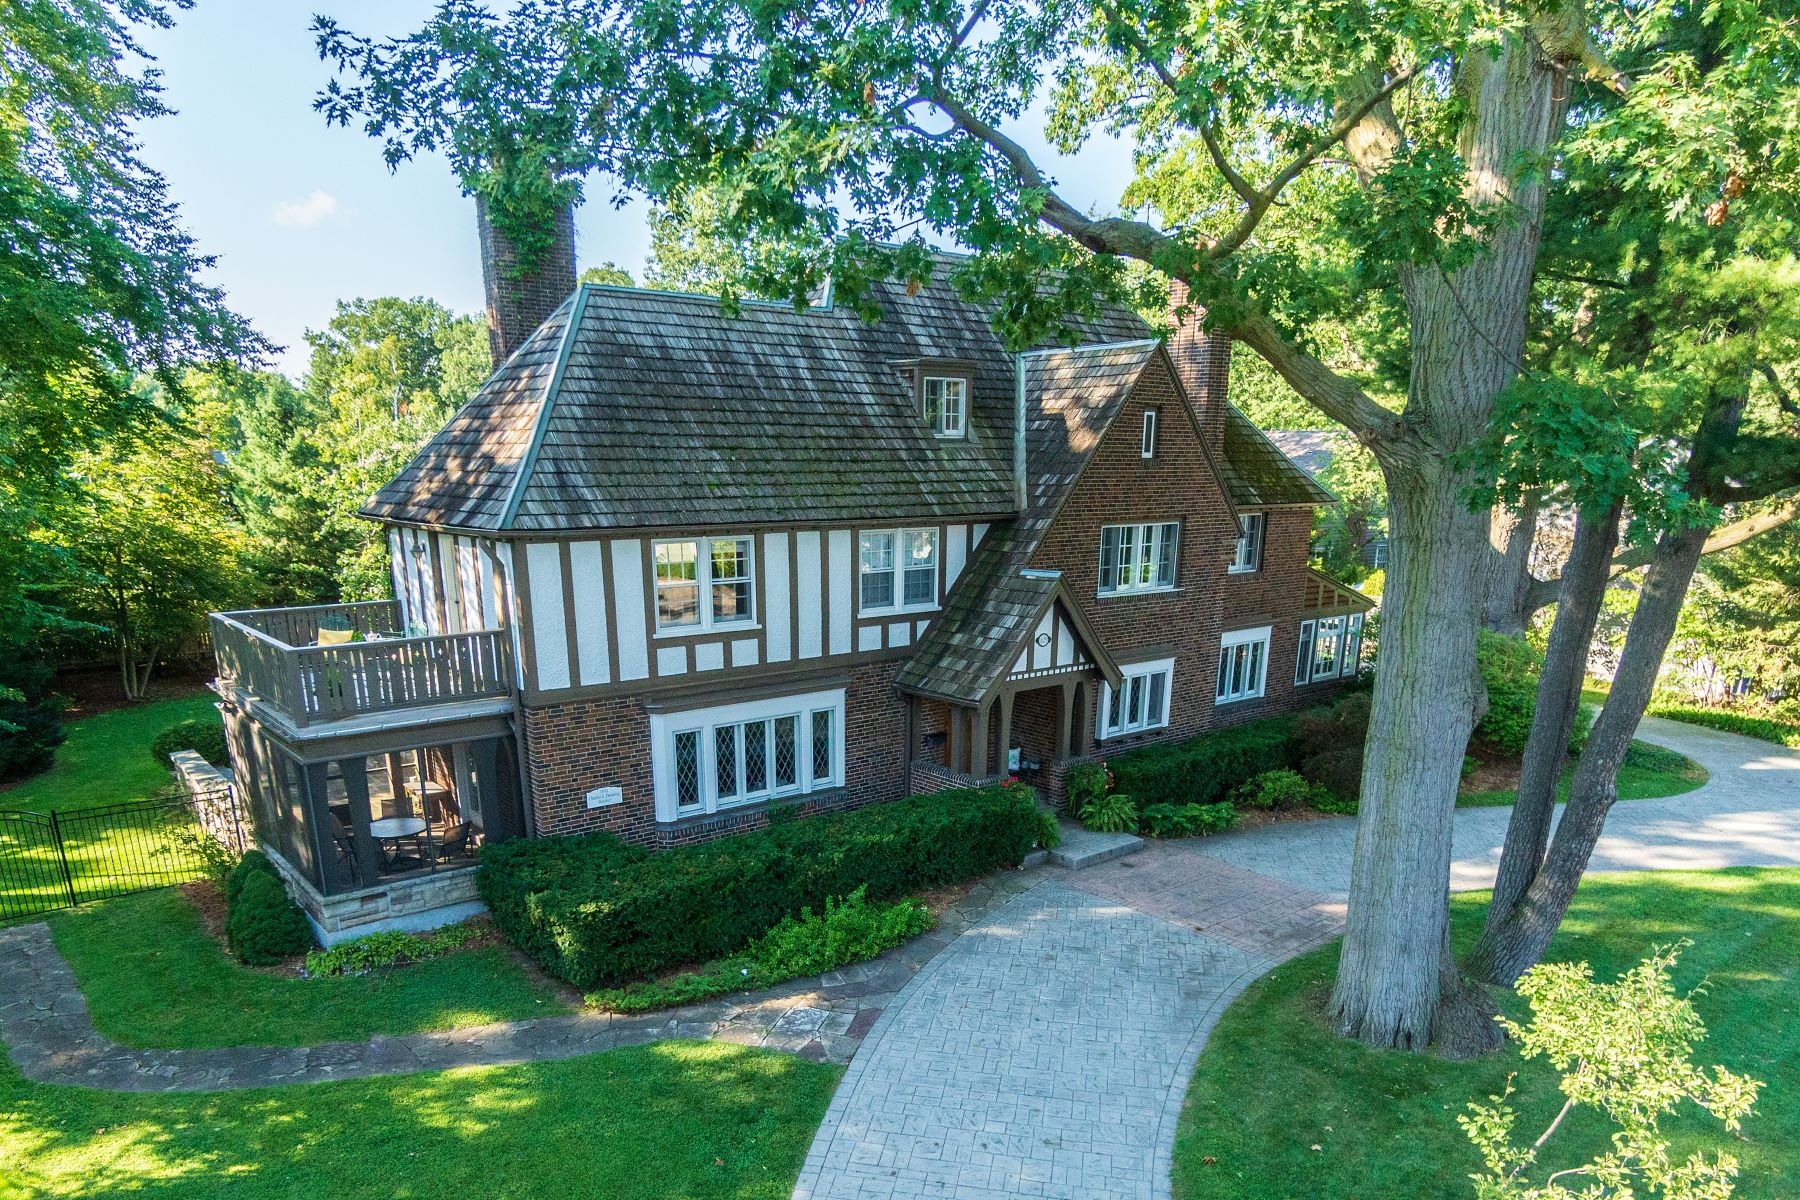 Single Family Homes for Sale at Magnificent English Manor Home 429 MacDonald Road Oakville, Ontario L6J 2B5 Canada